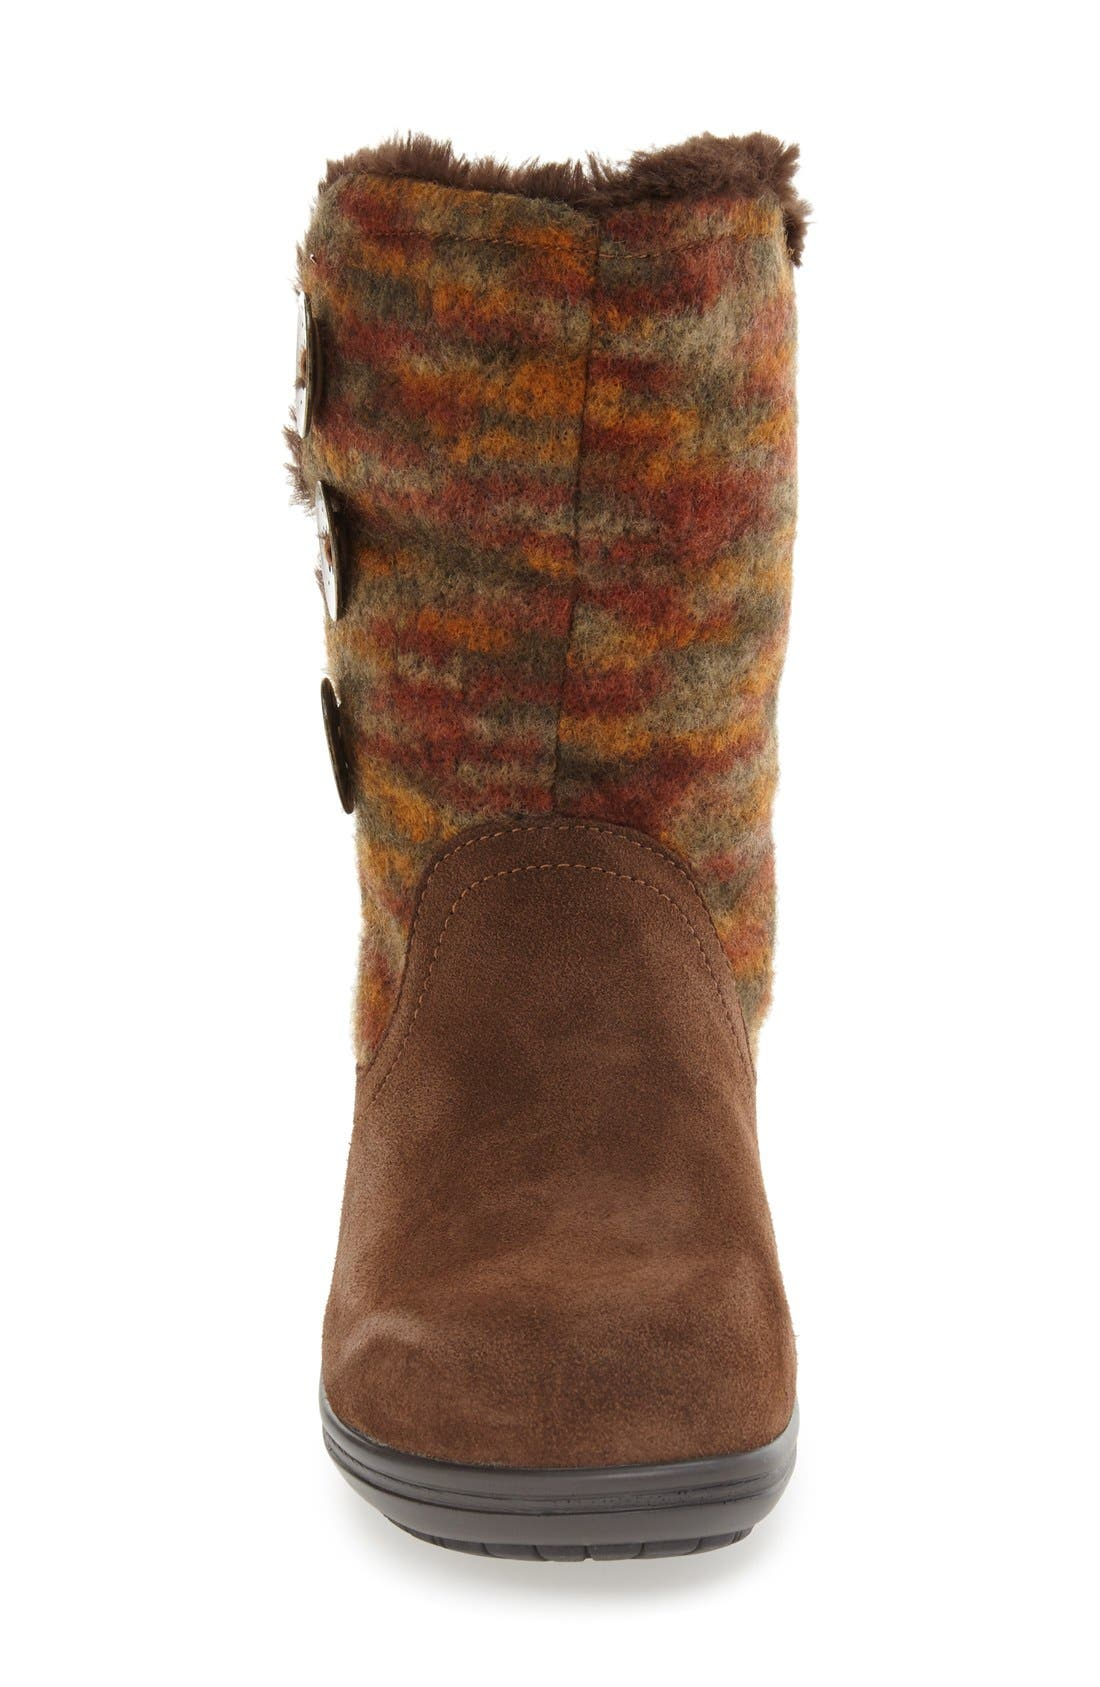 'Nanook' Suede Boot,                             Alternate thumbnail 3, color,                             Pecan Fuzzy Leather